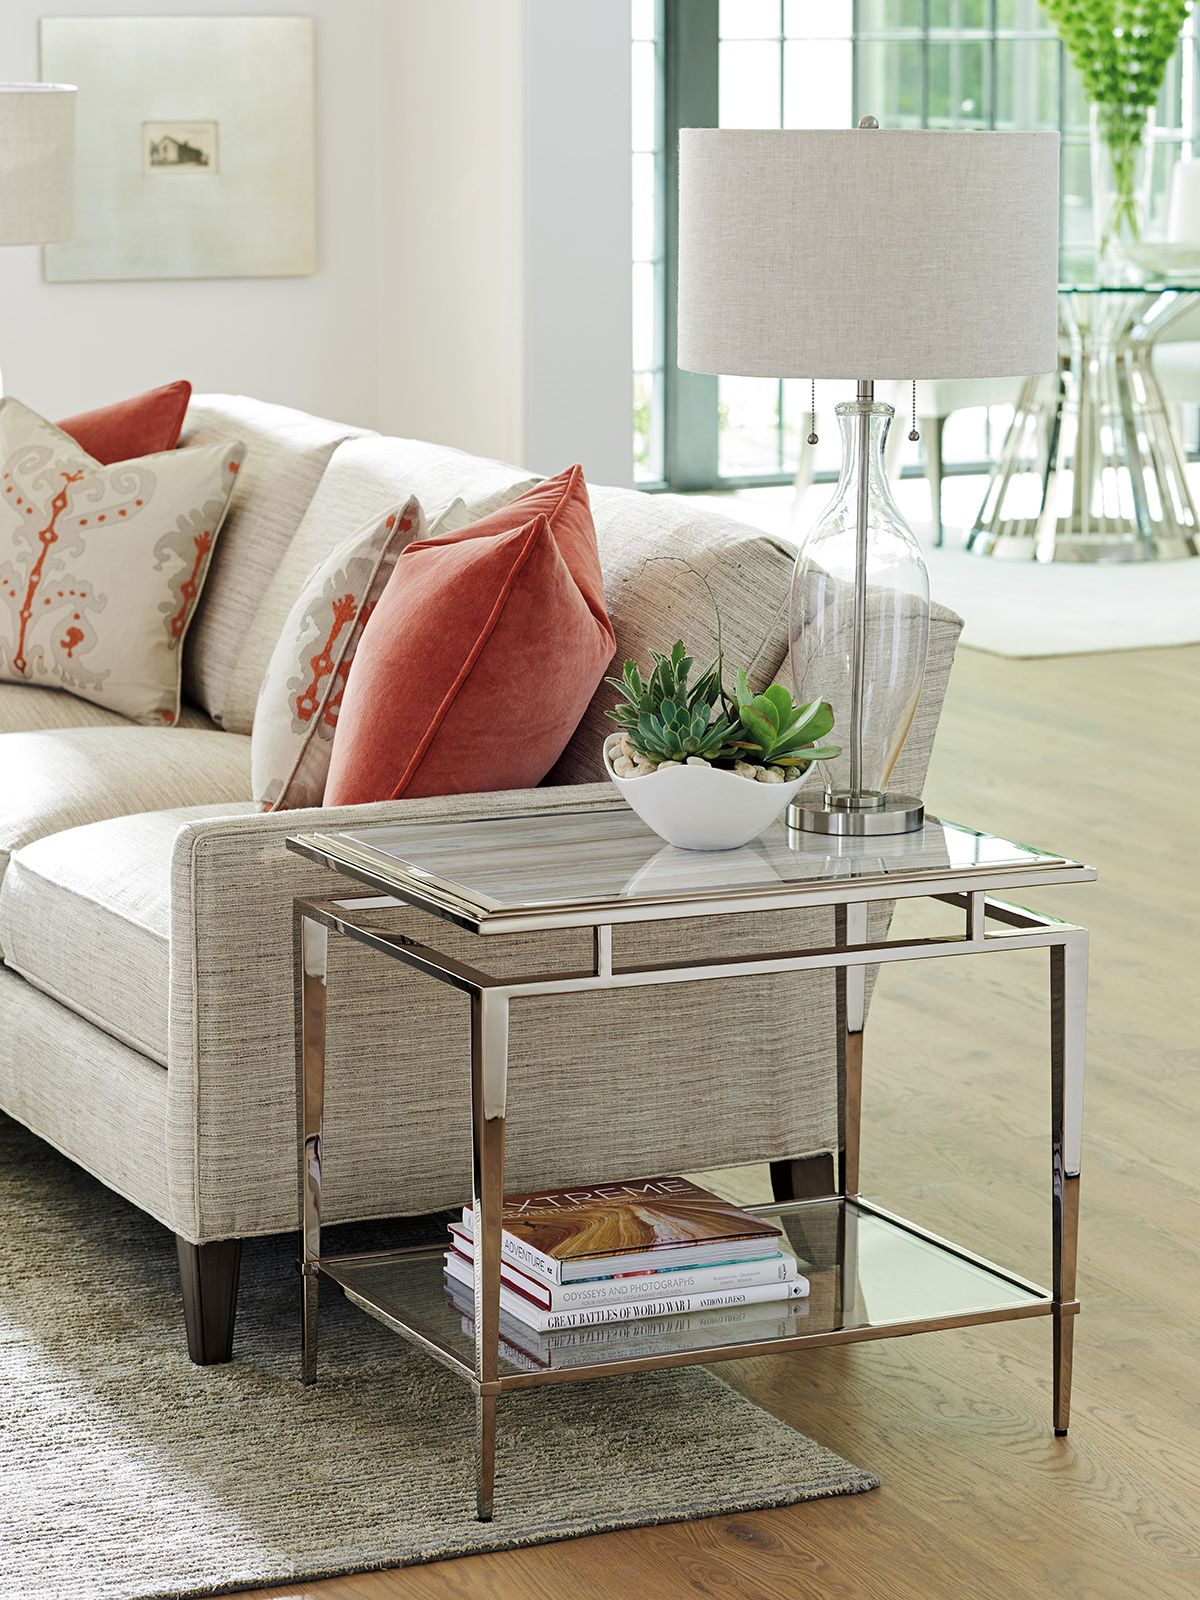 Ariana Athene Stainless End Table Lexington Home Brands With